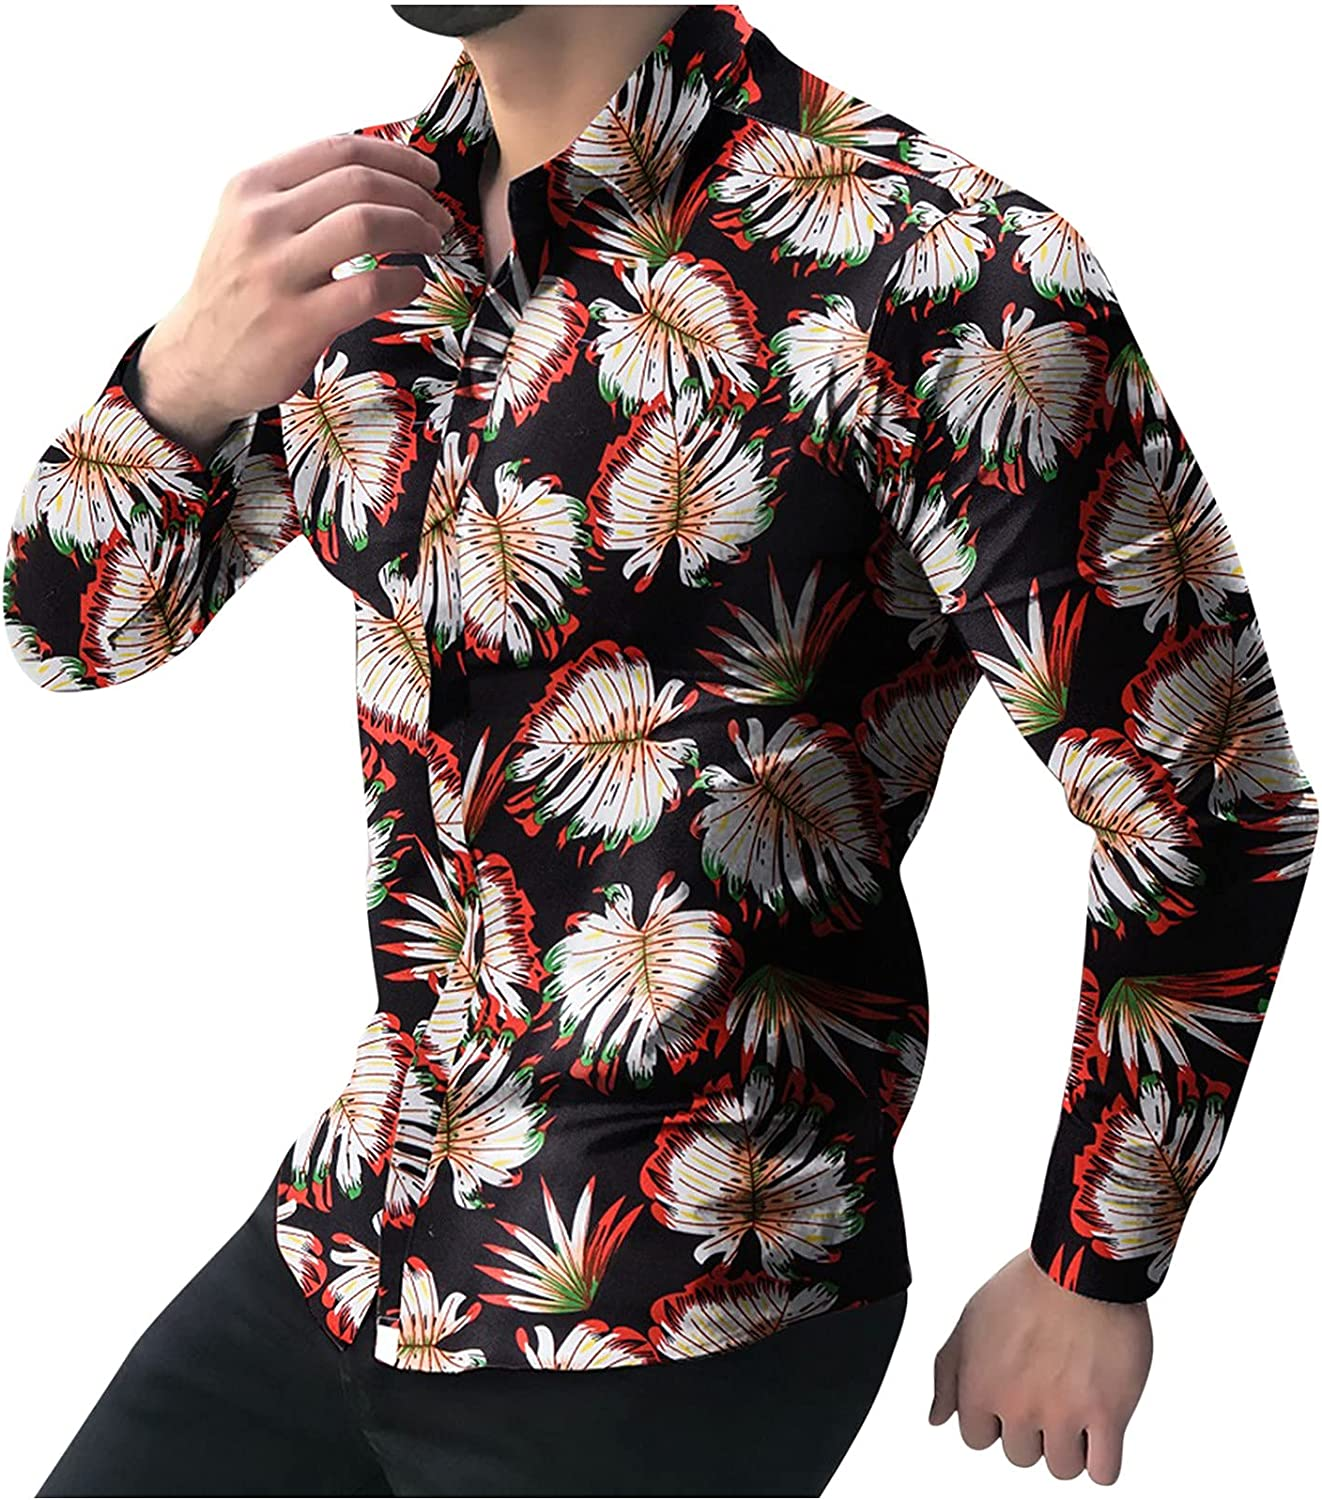 Long Sleeve for Men's Novelty Button Down Shirt Butterfly Printing T Shirts Mens Slim Bussiness Dress Shirts